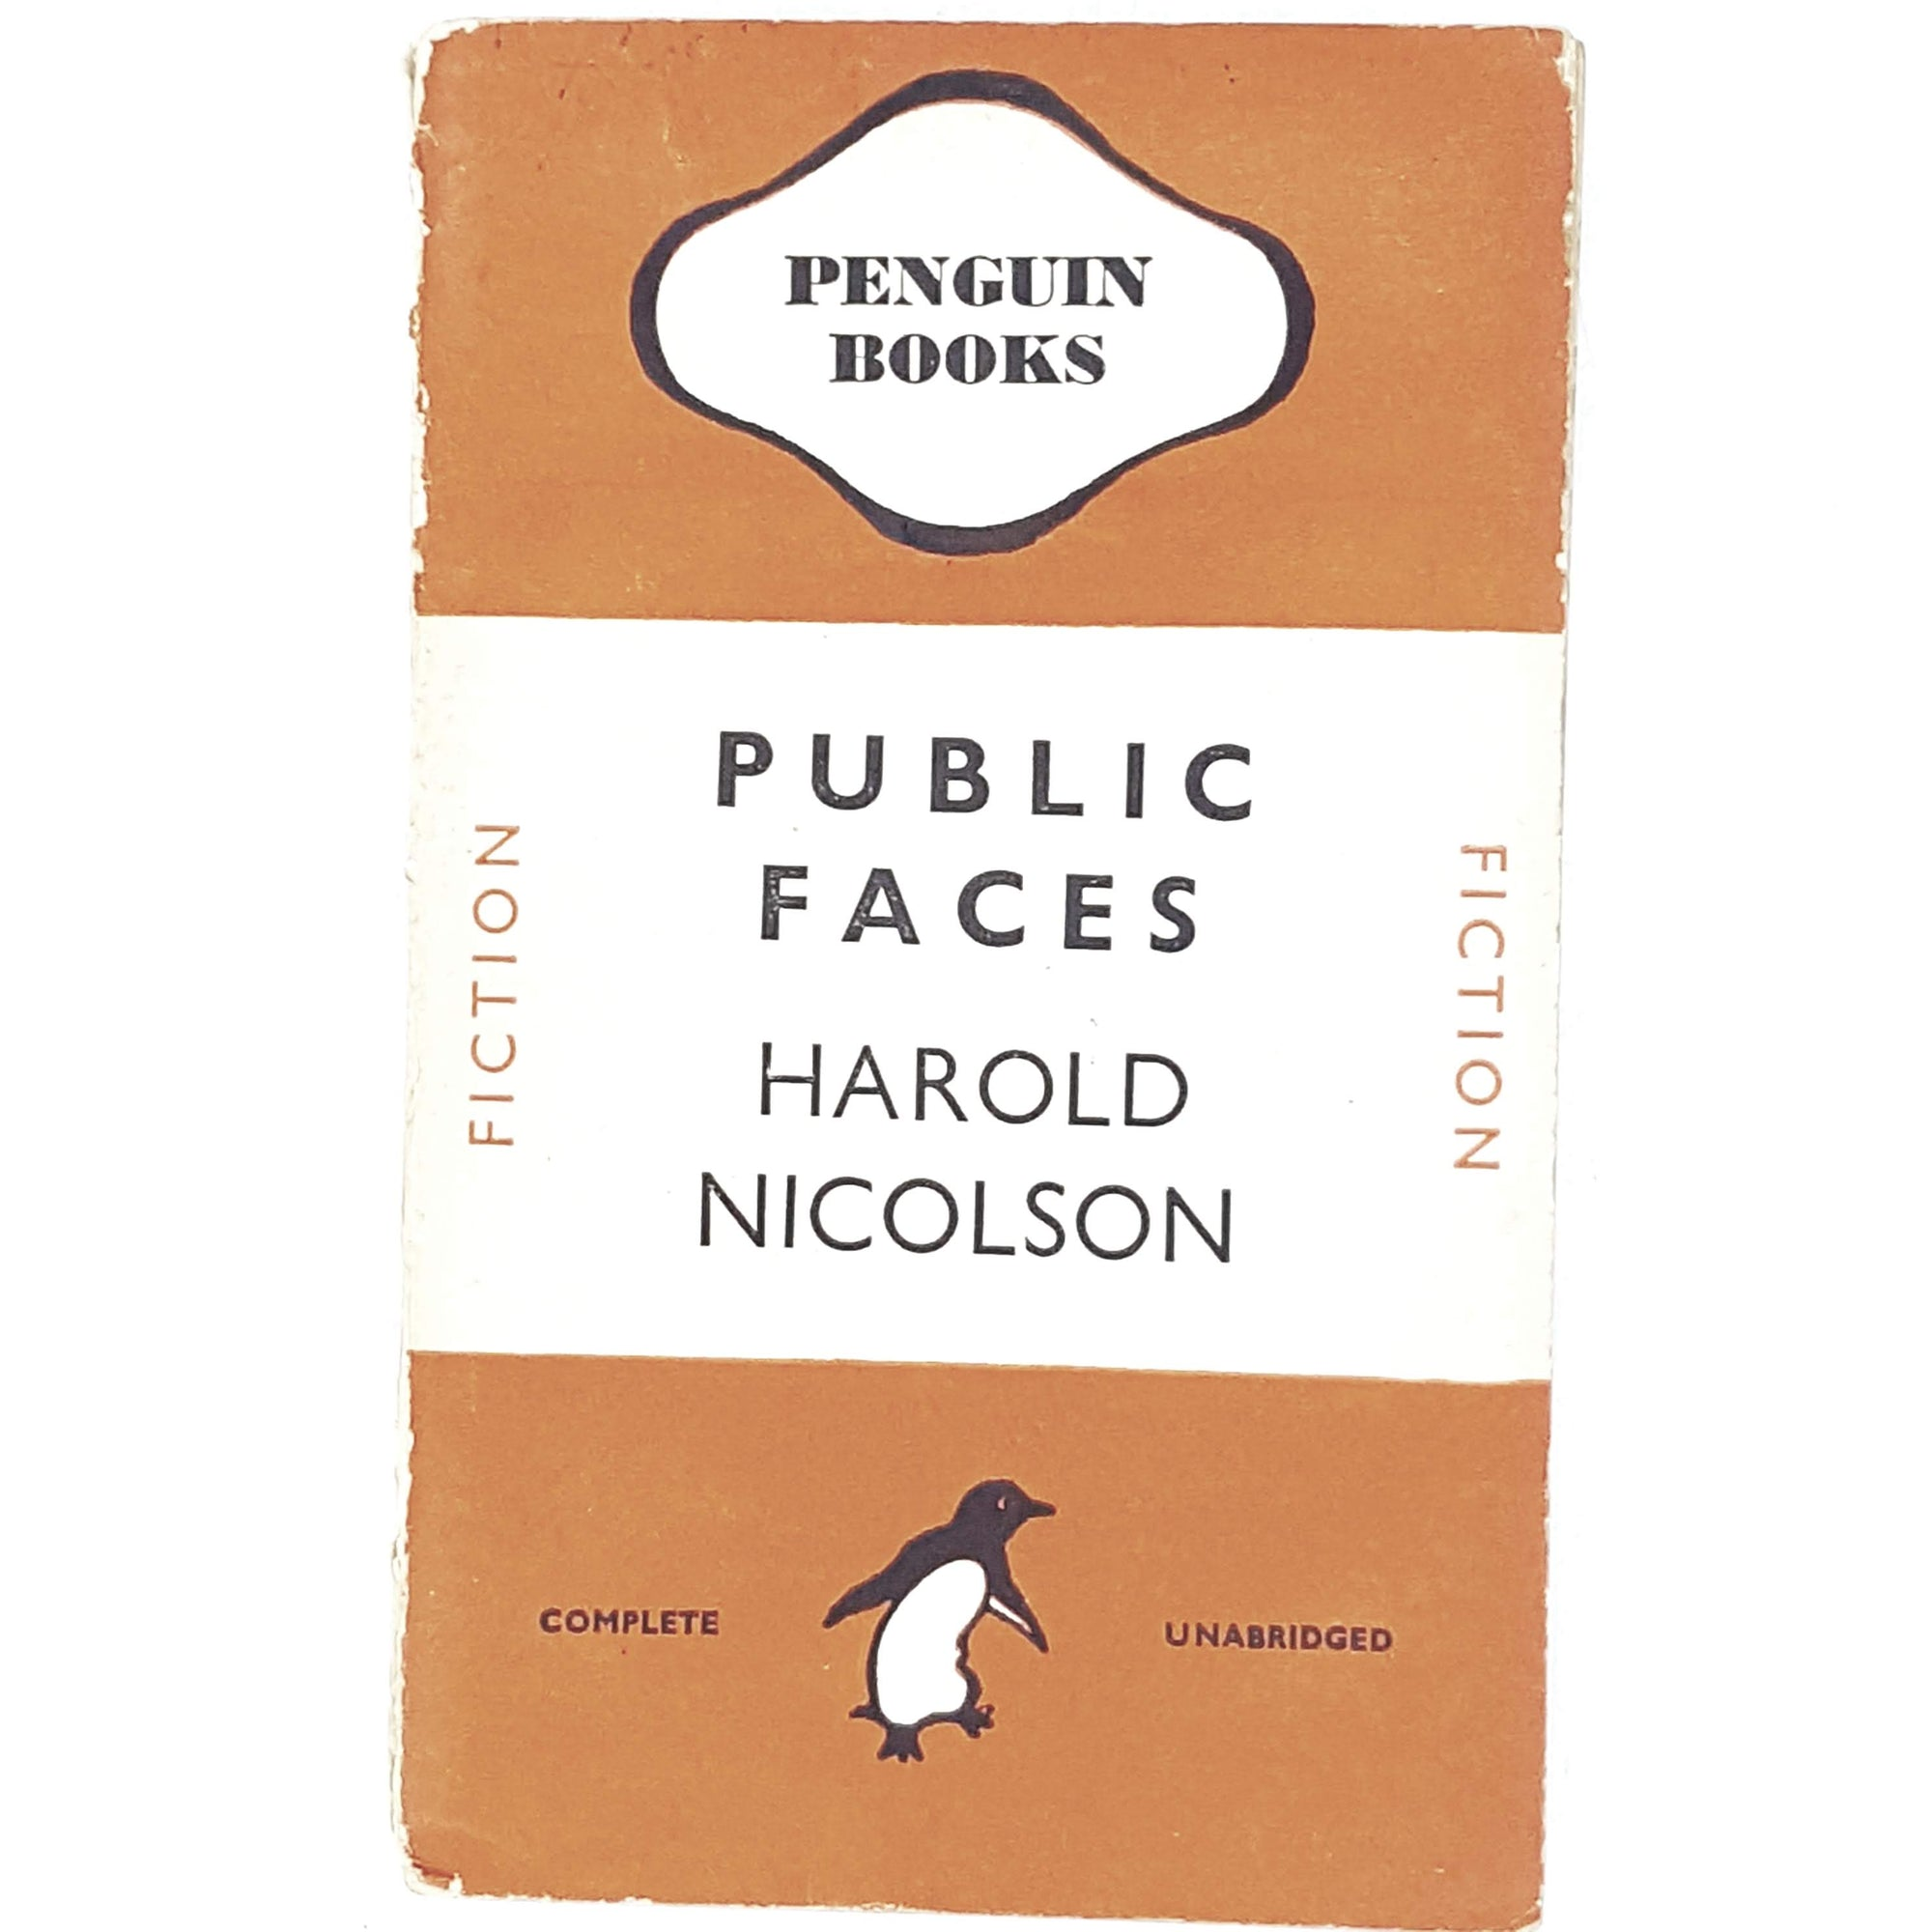 Vintage Penguin Public Faces by Harold Nicholson 1945